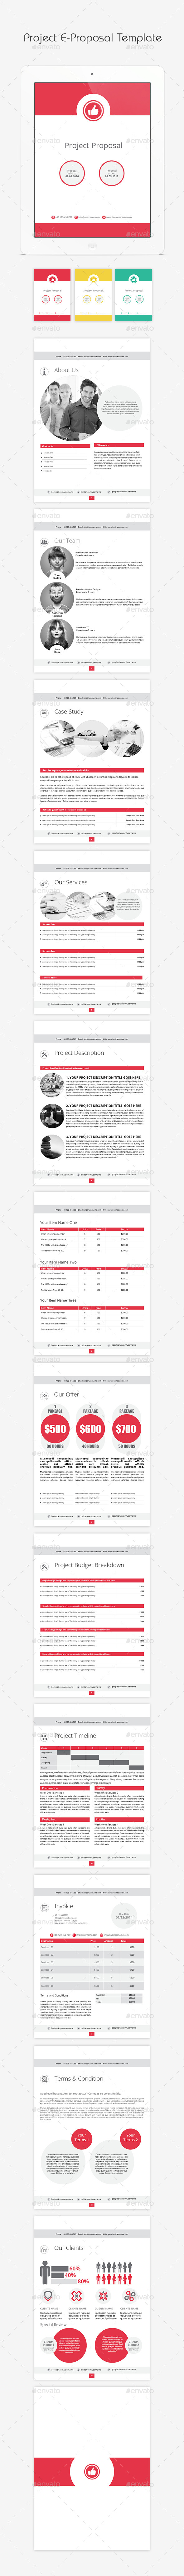 GraphicRiver Project E-Proposal Template 11565705